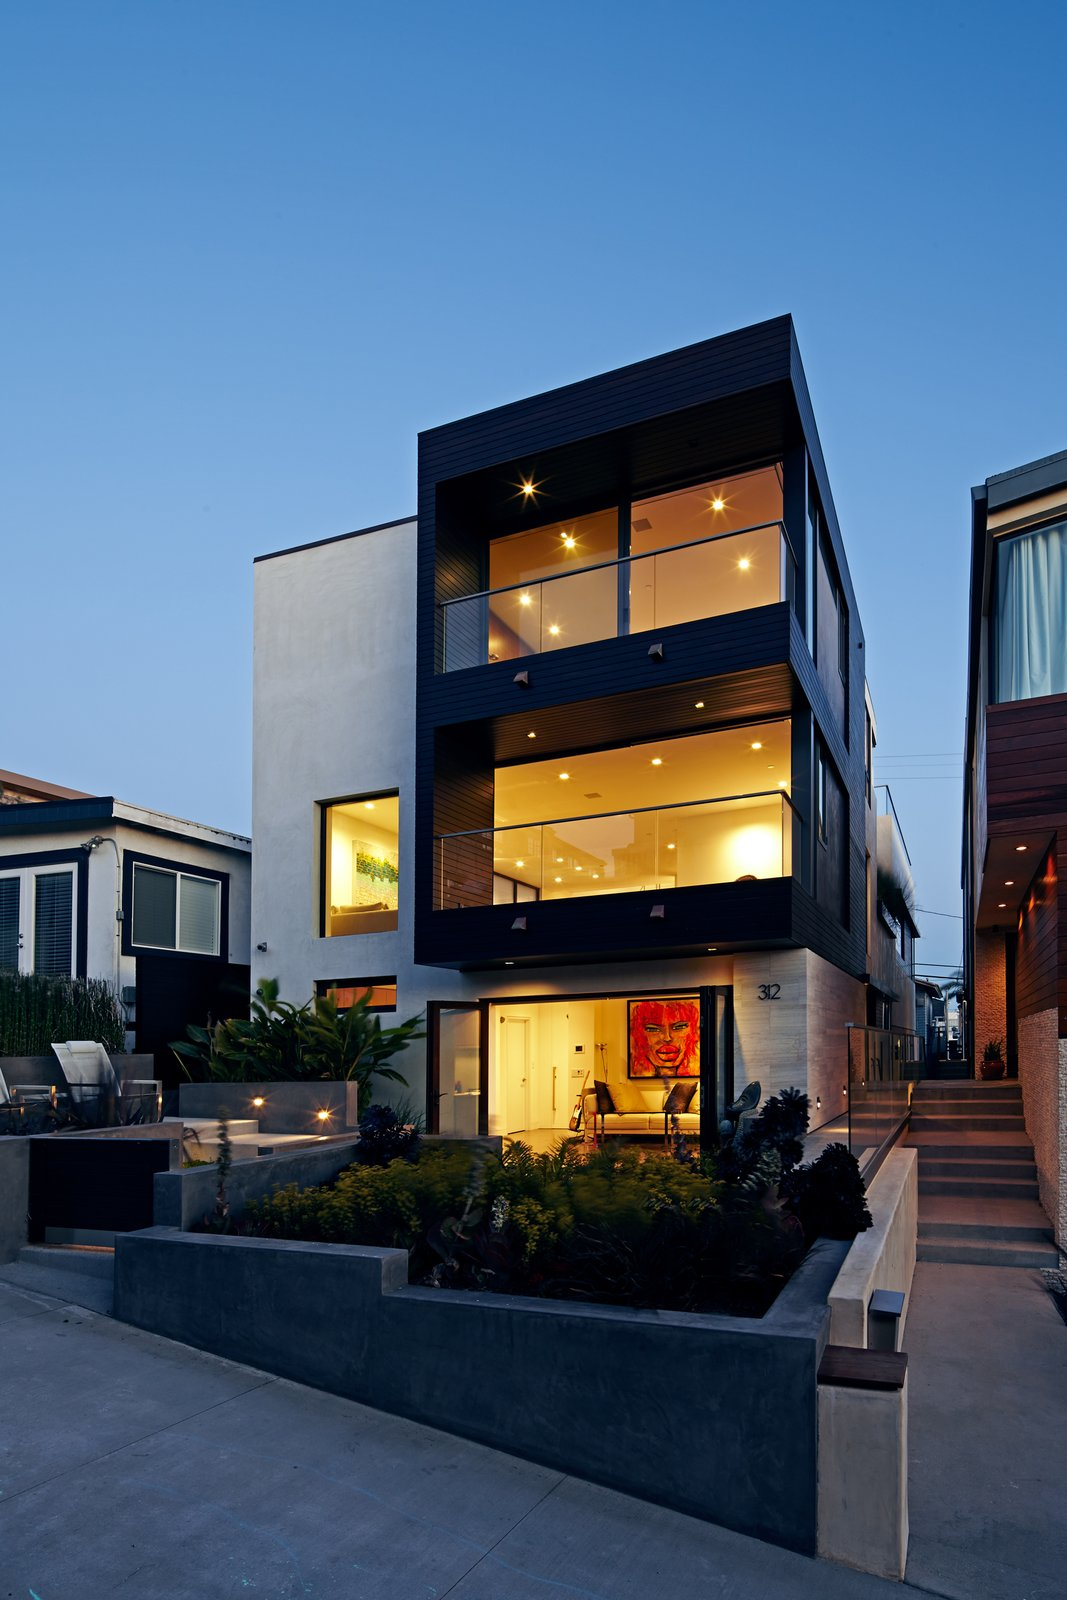 The front façade was redesigned with large openings that create a connection to the ocean views.  Accordion style glass doors were installed on the lower floor to form an indoor-outdoor space with the front garden.  The exterior palette is a subtle mix of smooth trowel stucco and honed limestone, emboldened with dark stained mahogany siding.  Perrin Residence by Abramson Teiger Architects